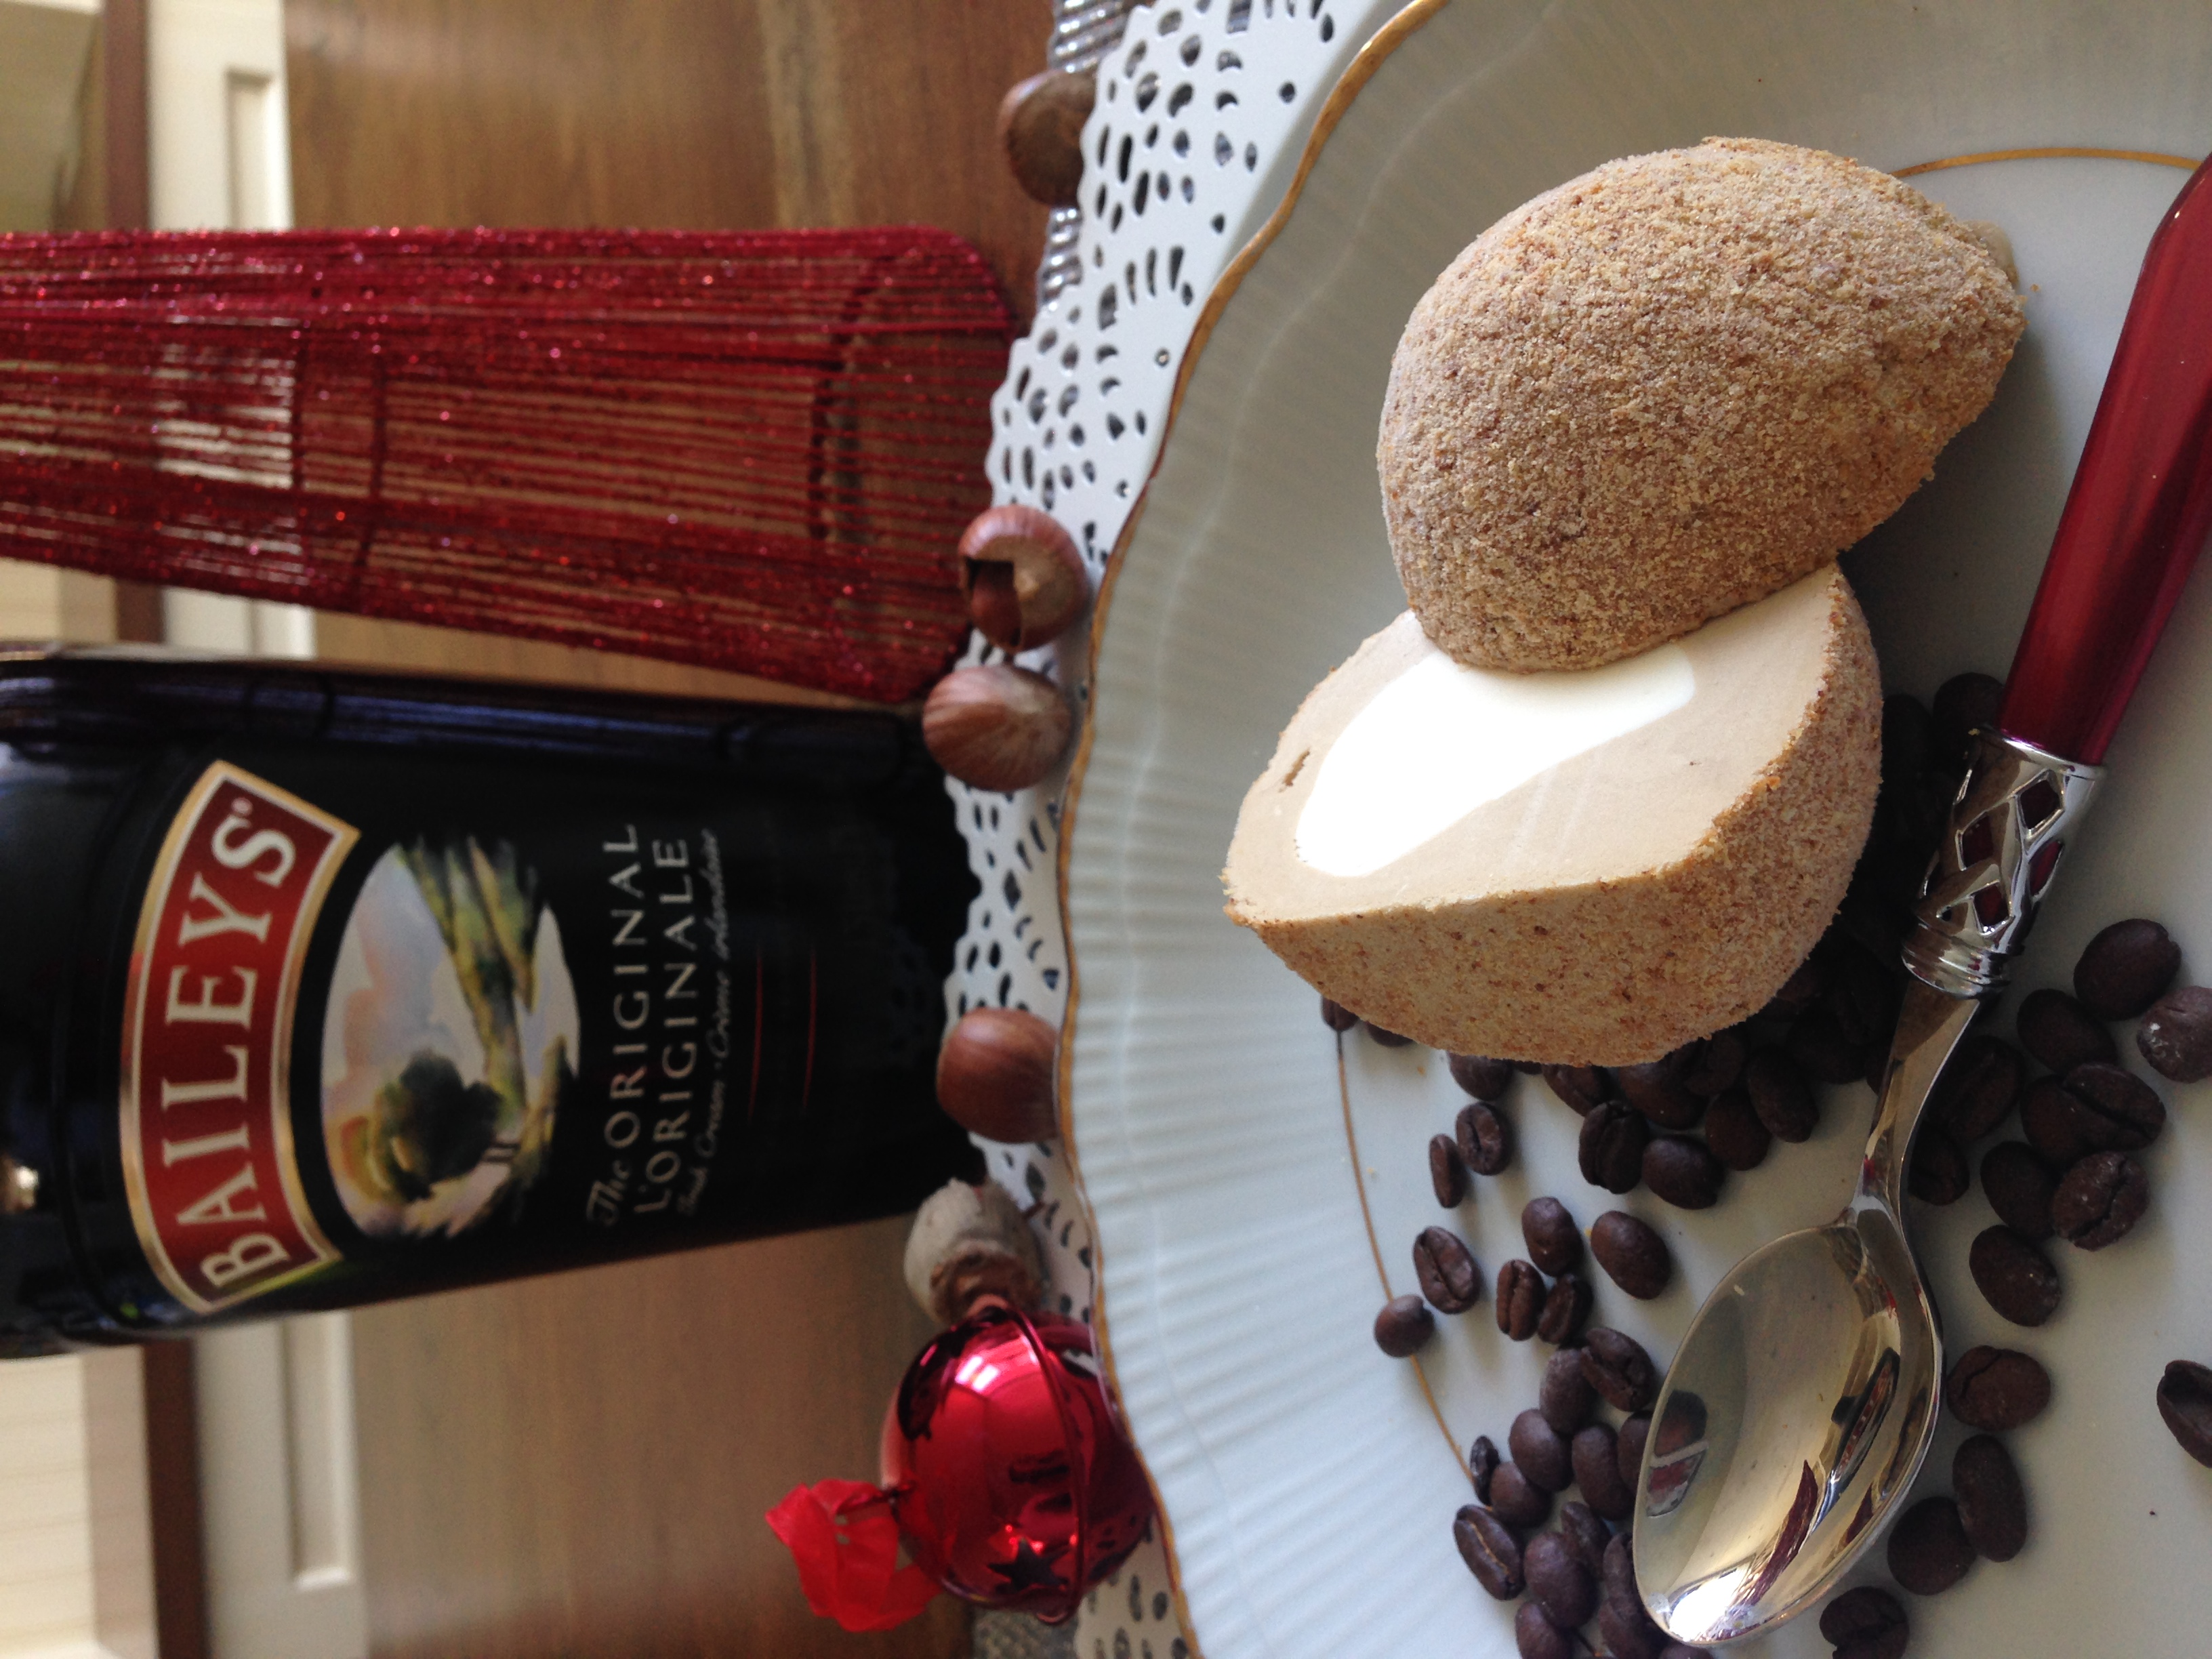 Tartufo Bailey's ice cream centred in Caffe Latte rolled in Almond Biscotti